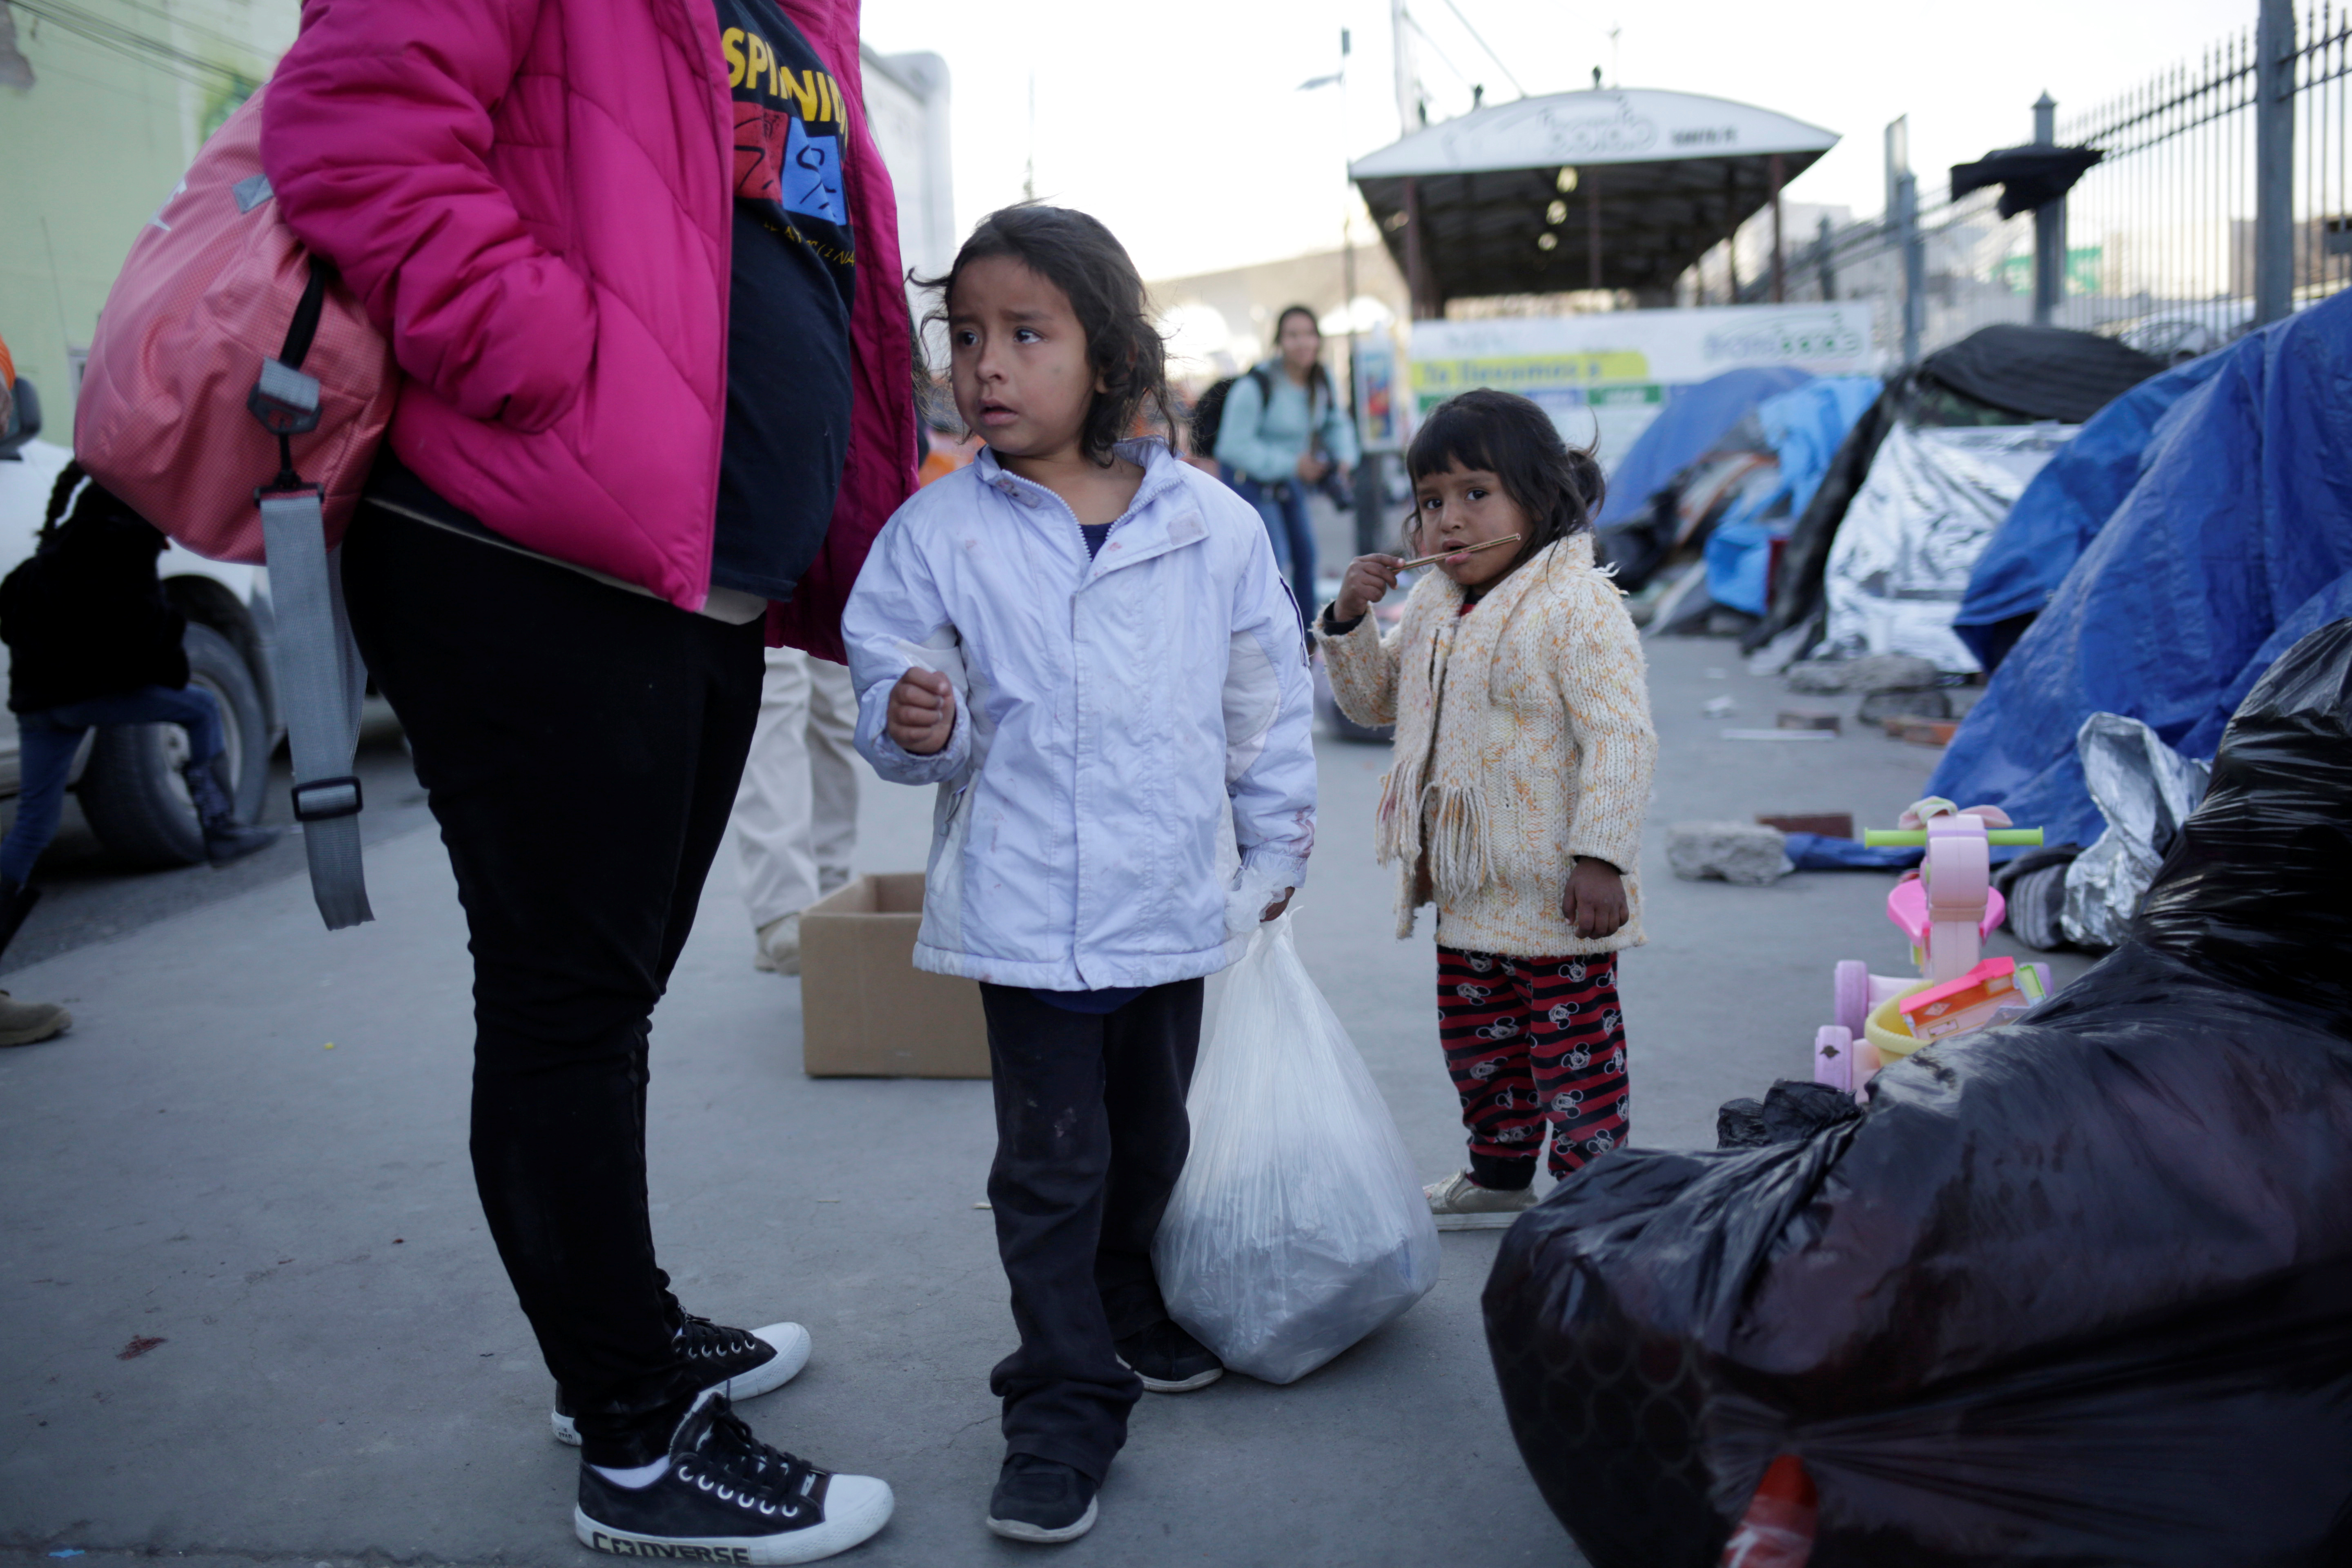 Judge rules in favor of Trump administration in family separation case